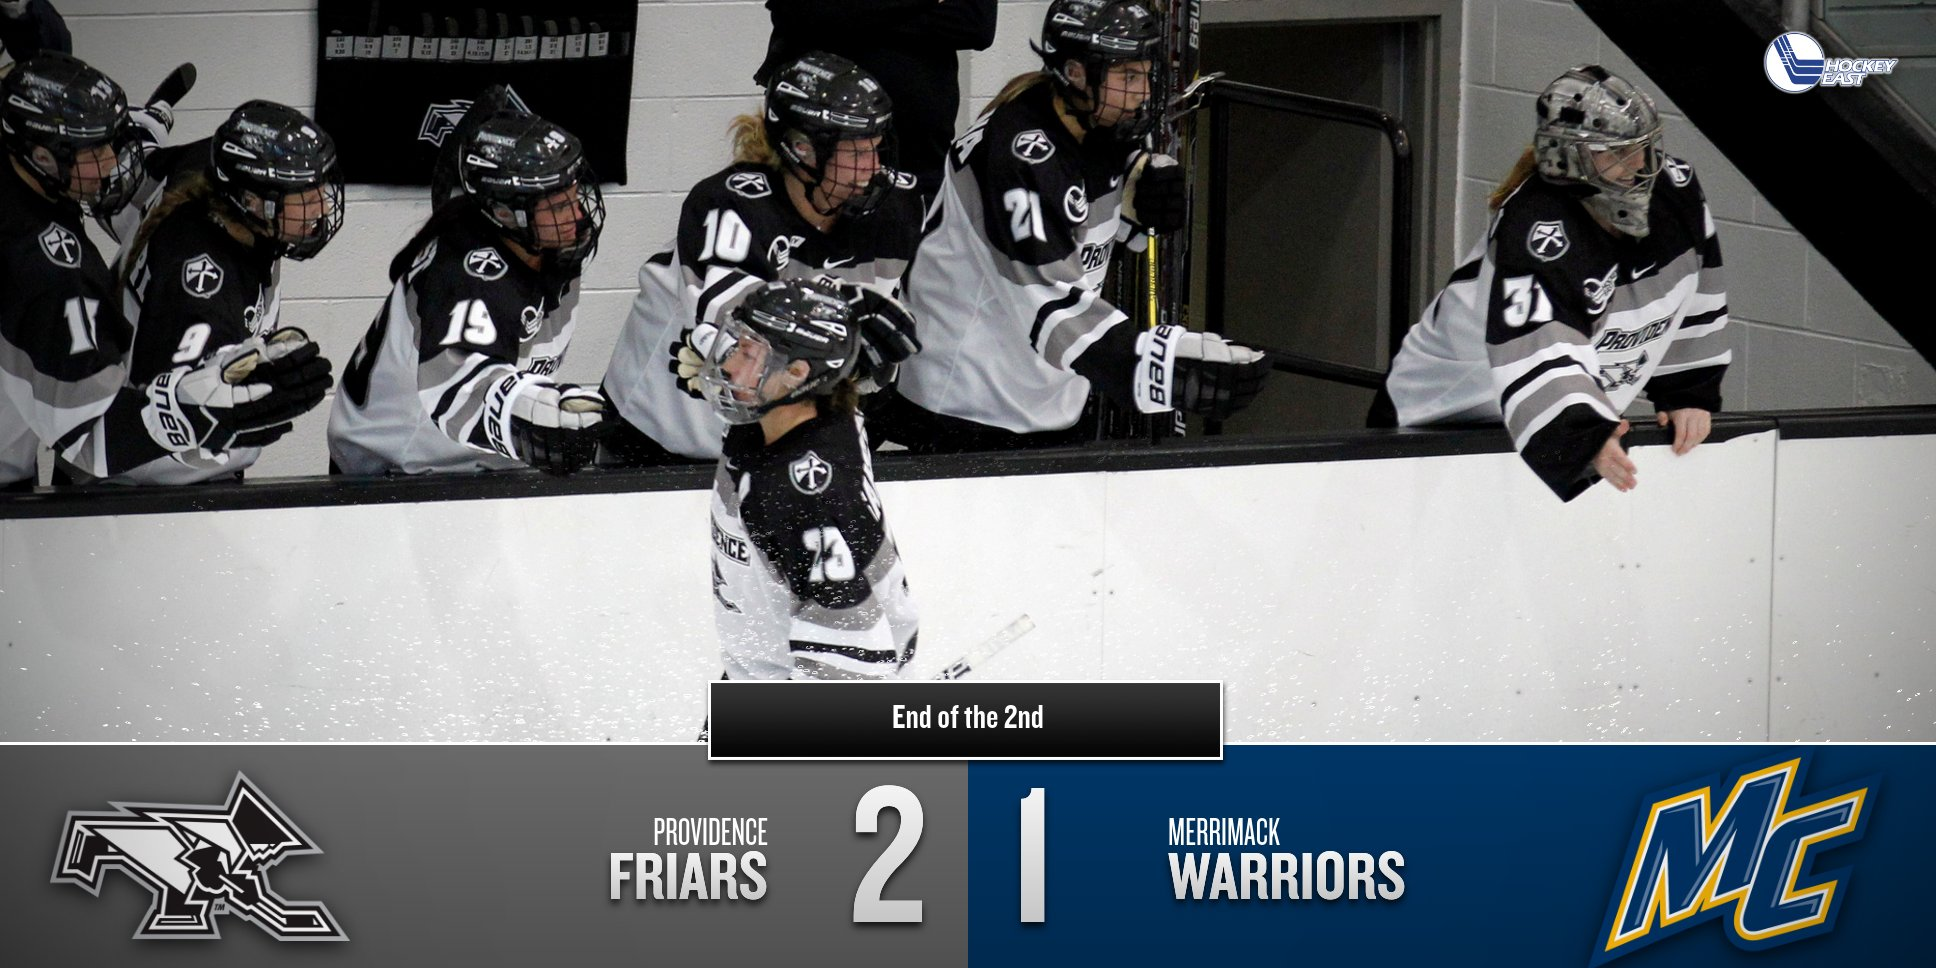 20 minutes to go! Friars holding onto a 2-1 lead and a 29-19 shot advantage going into the 3rd #GoFriars https://t.co/gAMADXrrBQ